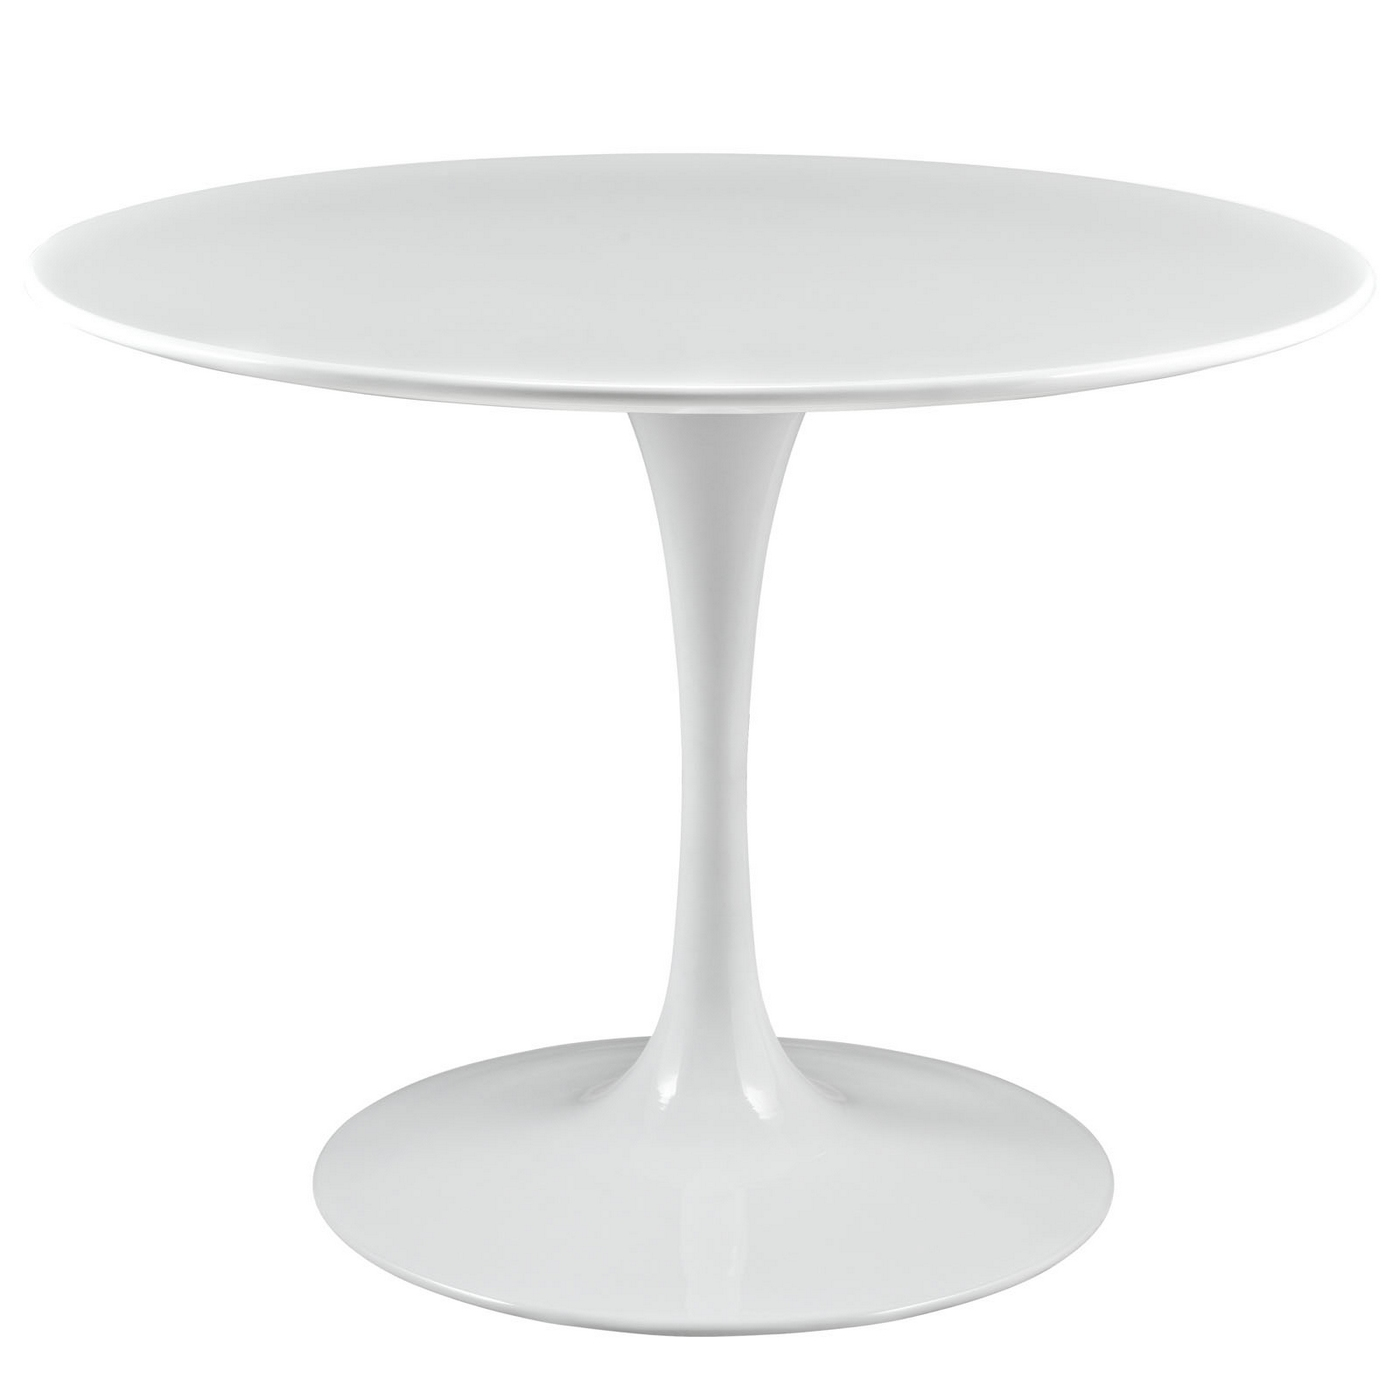 Lippa Modern 40 Quot Round Wood Top Dining Table W Lacquered